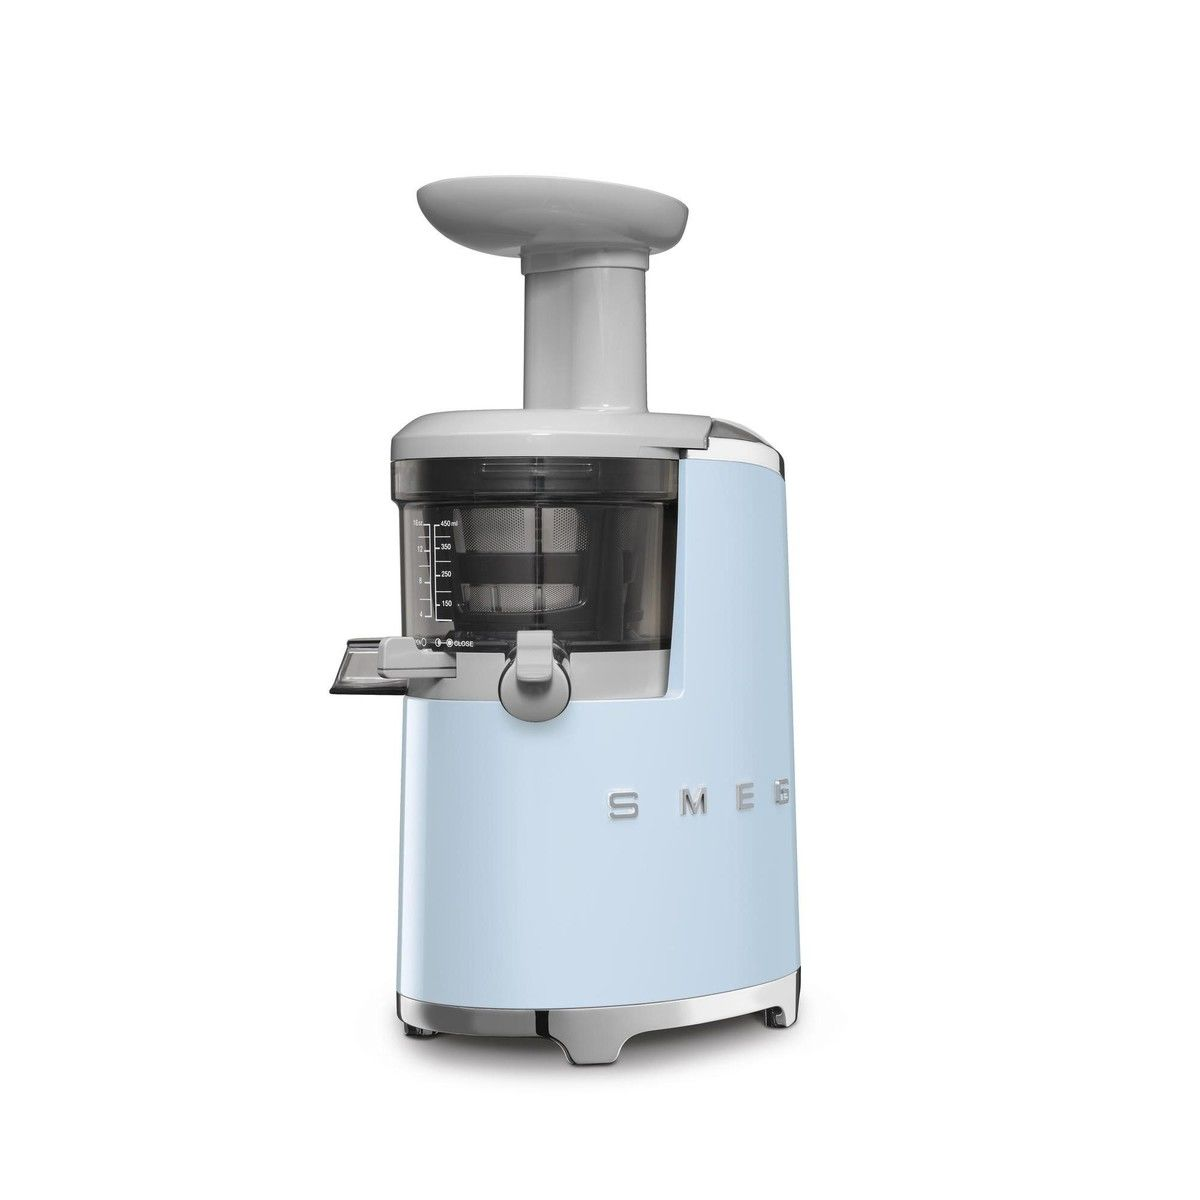 SJF01 Slow Juicer Smeg AmbienteDirect.com